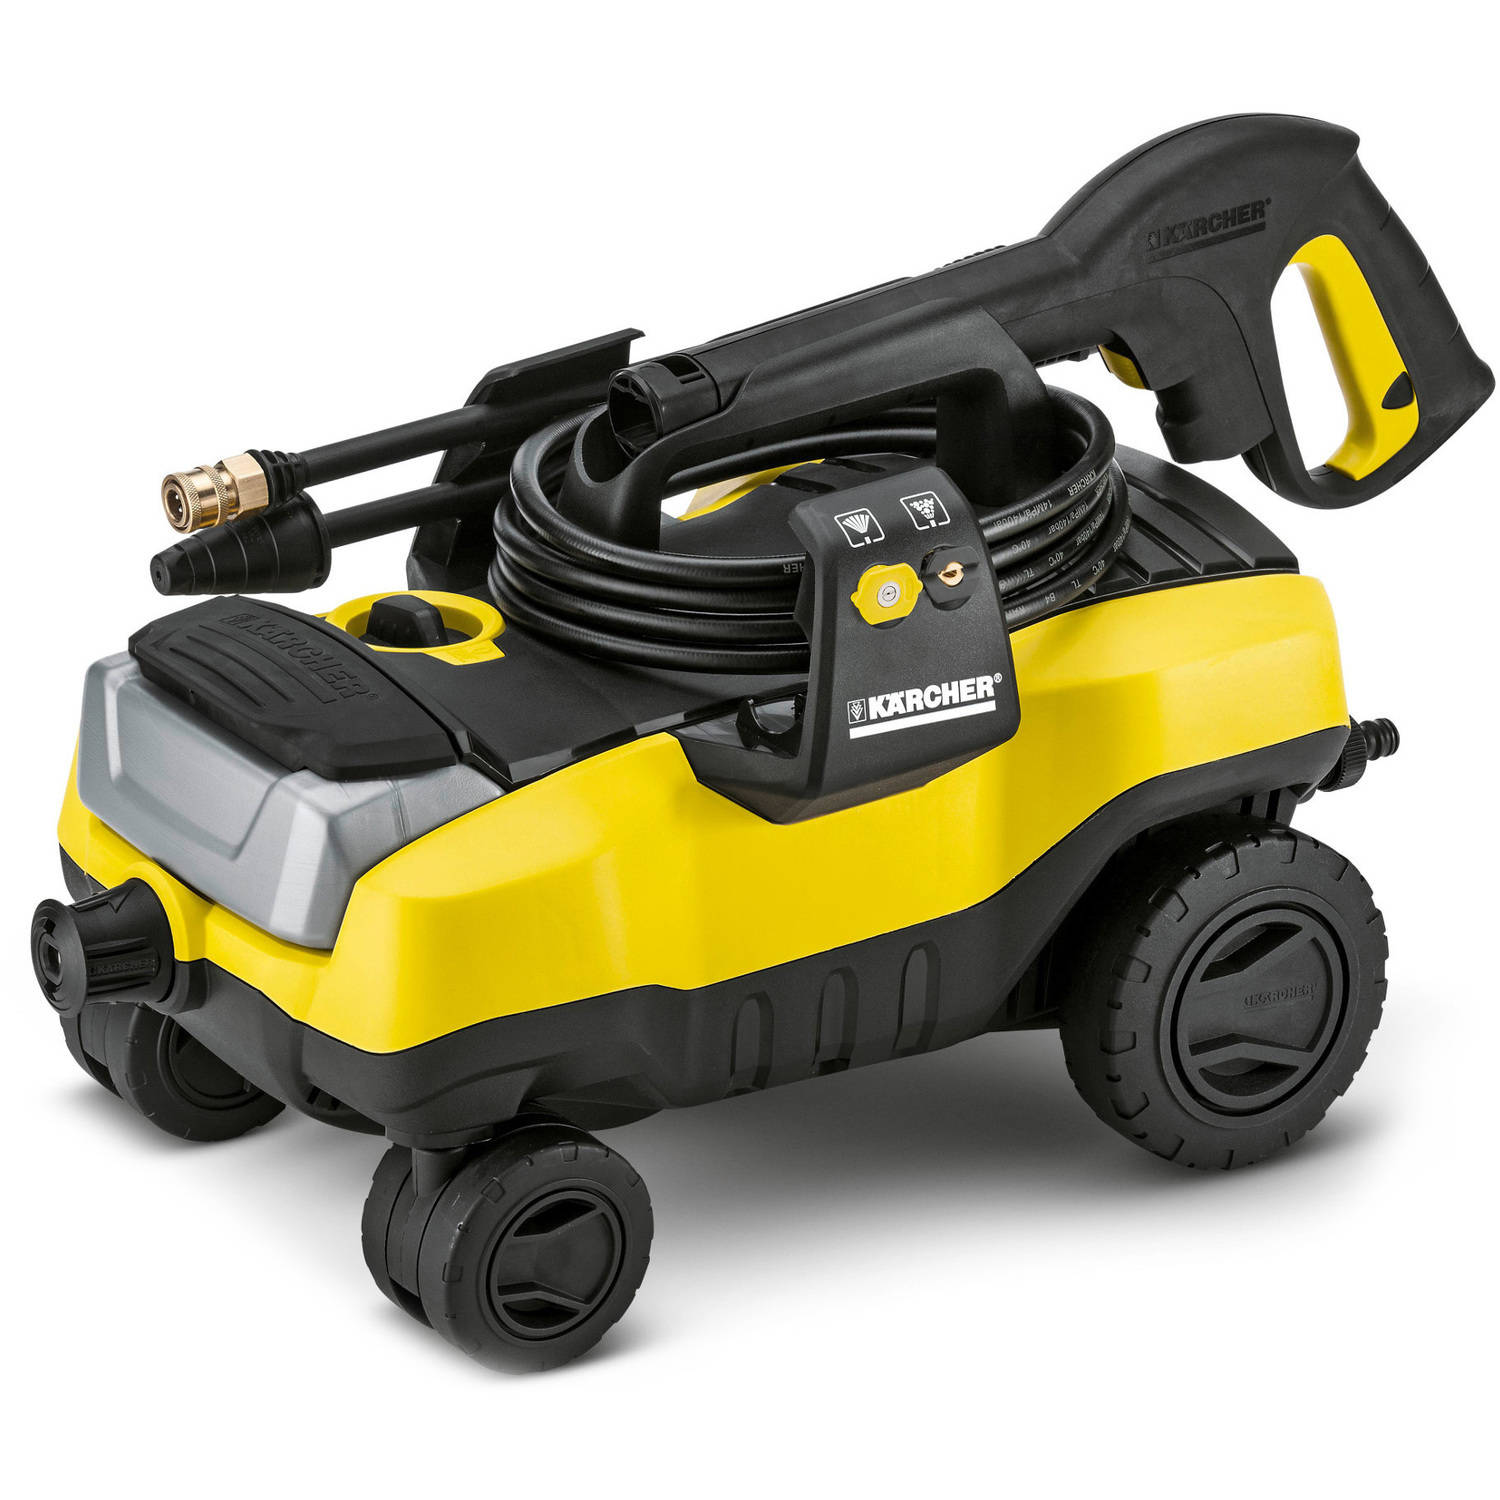 Karcher K3 Follow Me Universal 1700 PSI Electric Pressure Washer